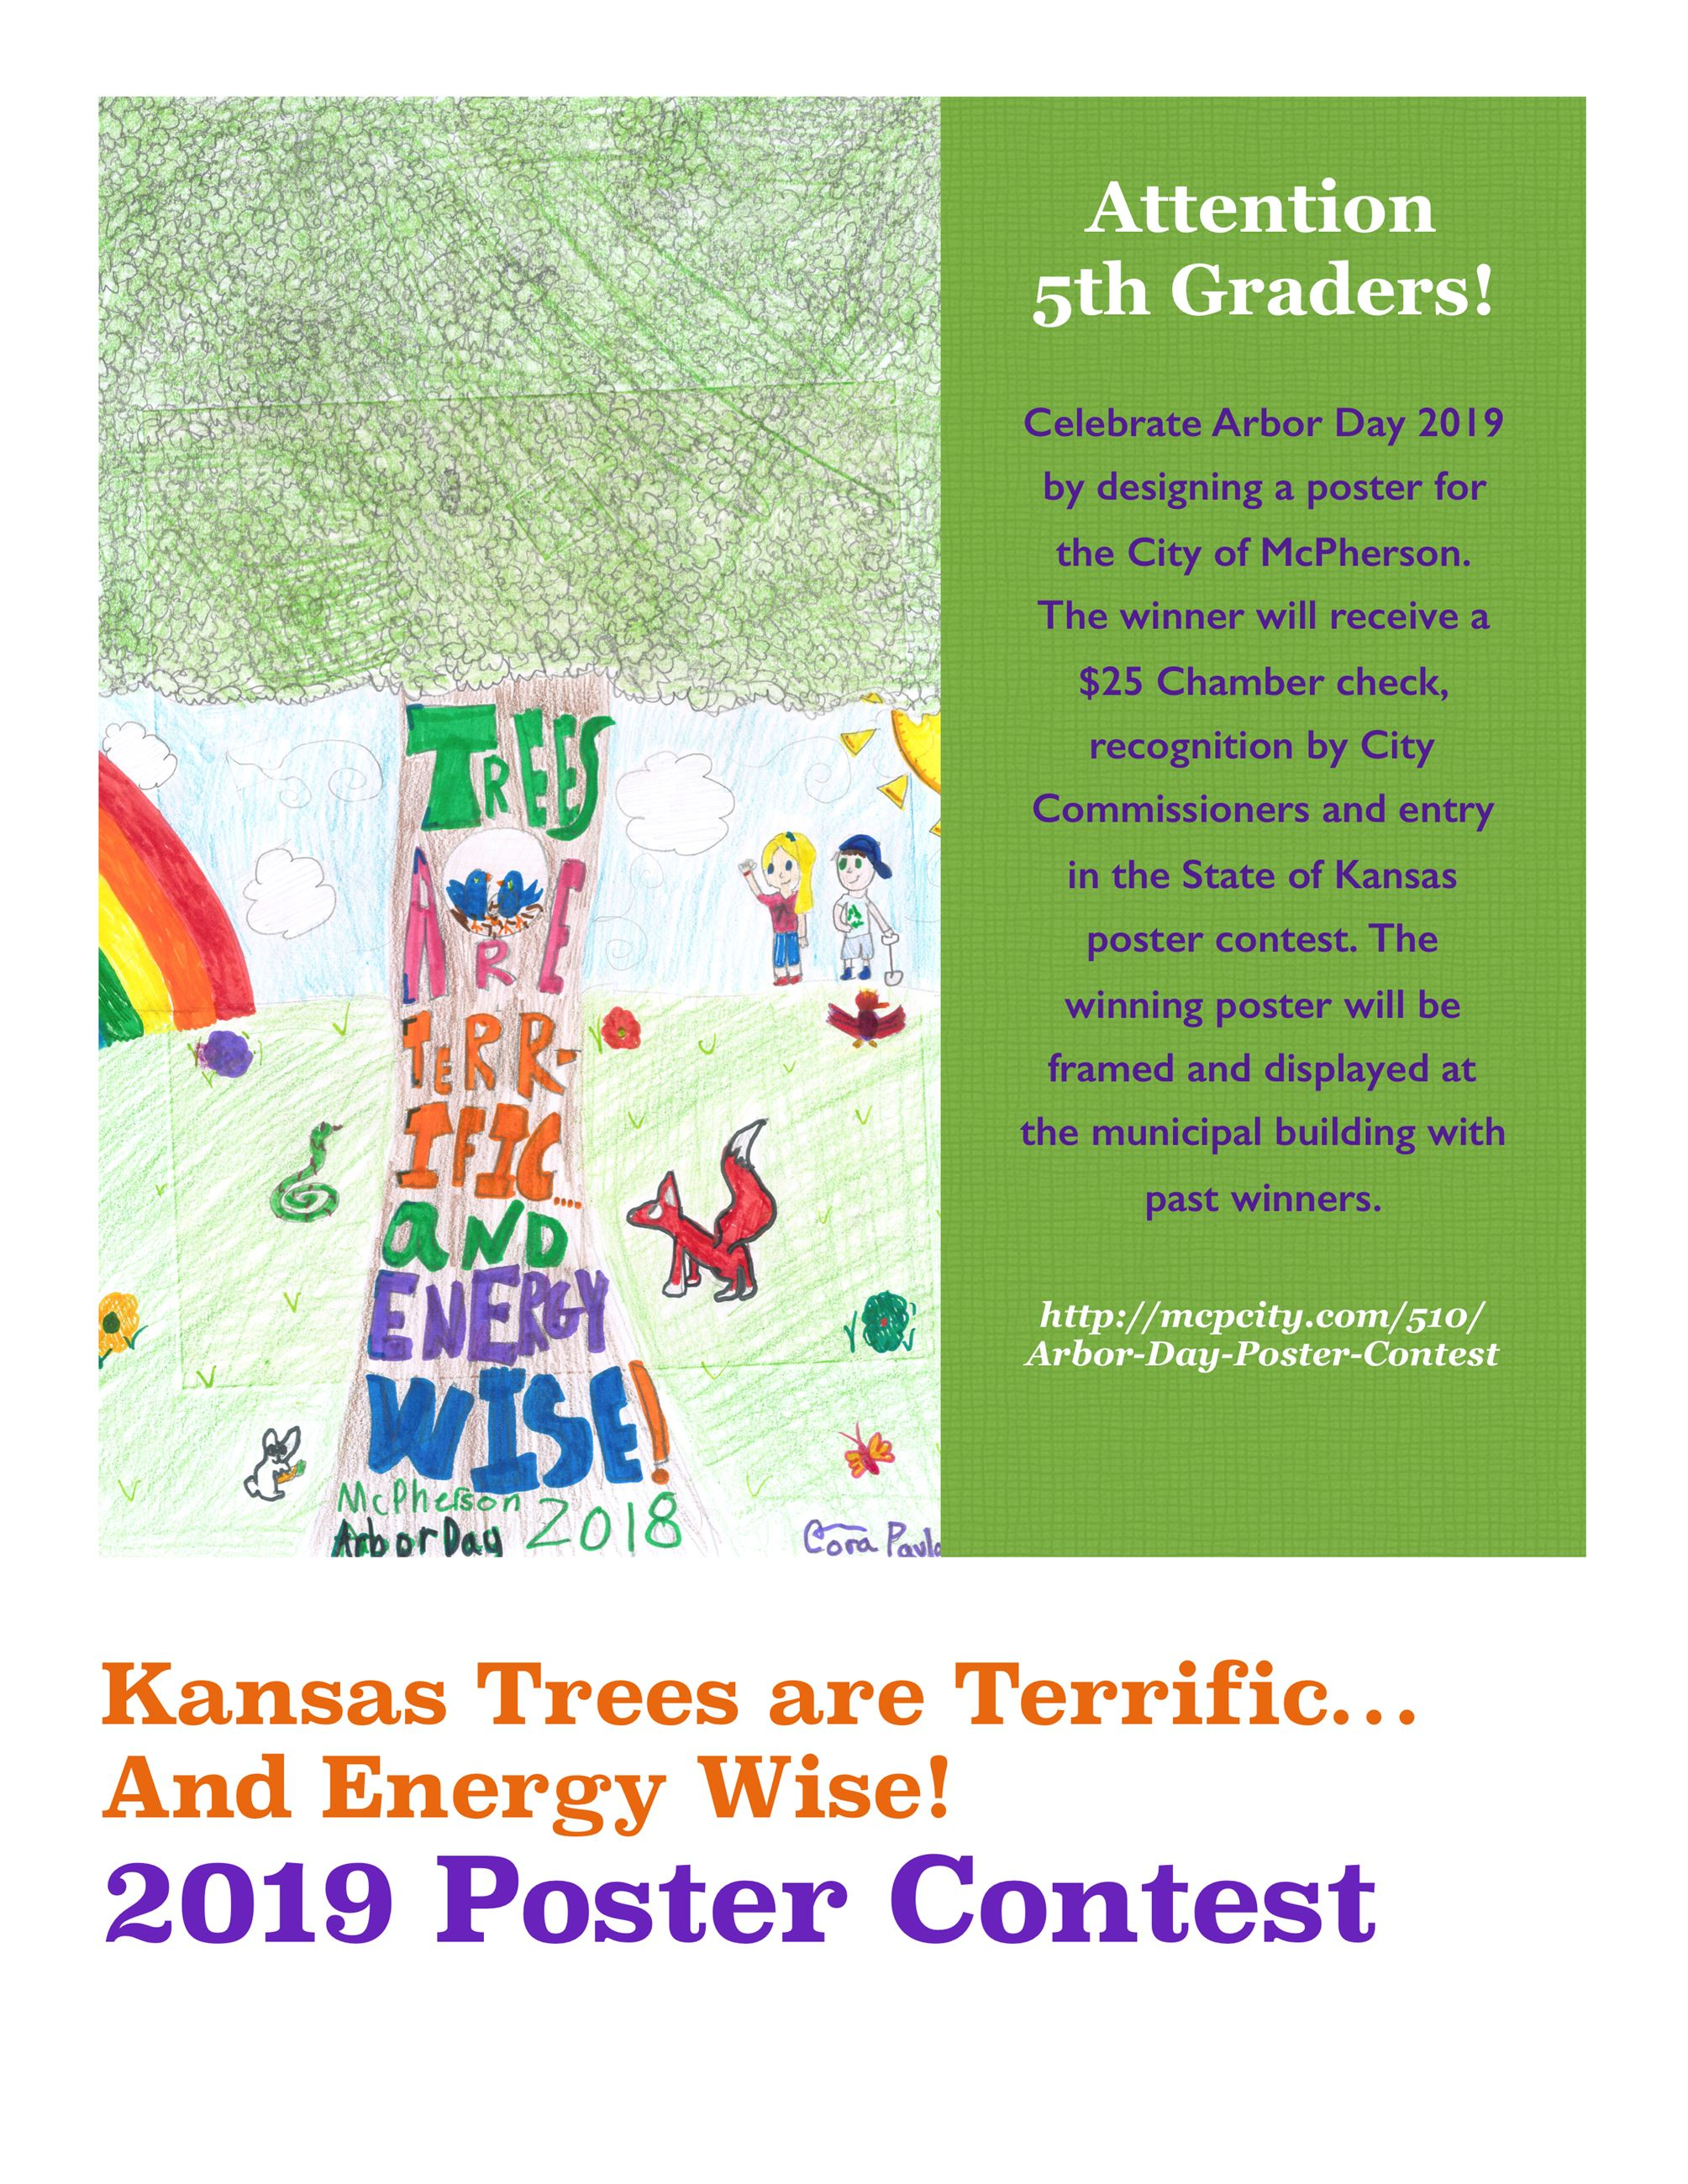 Poster with the words ATTENTION 5TH GRADERS and tree artwork promoting a poster contest